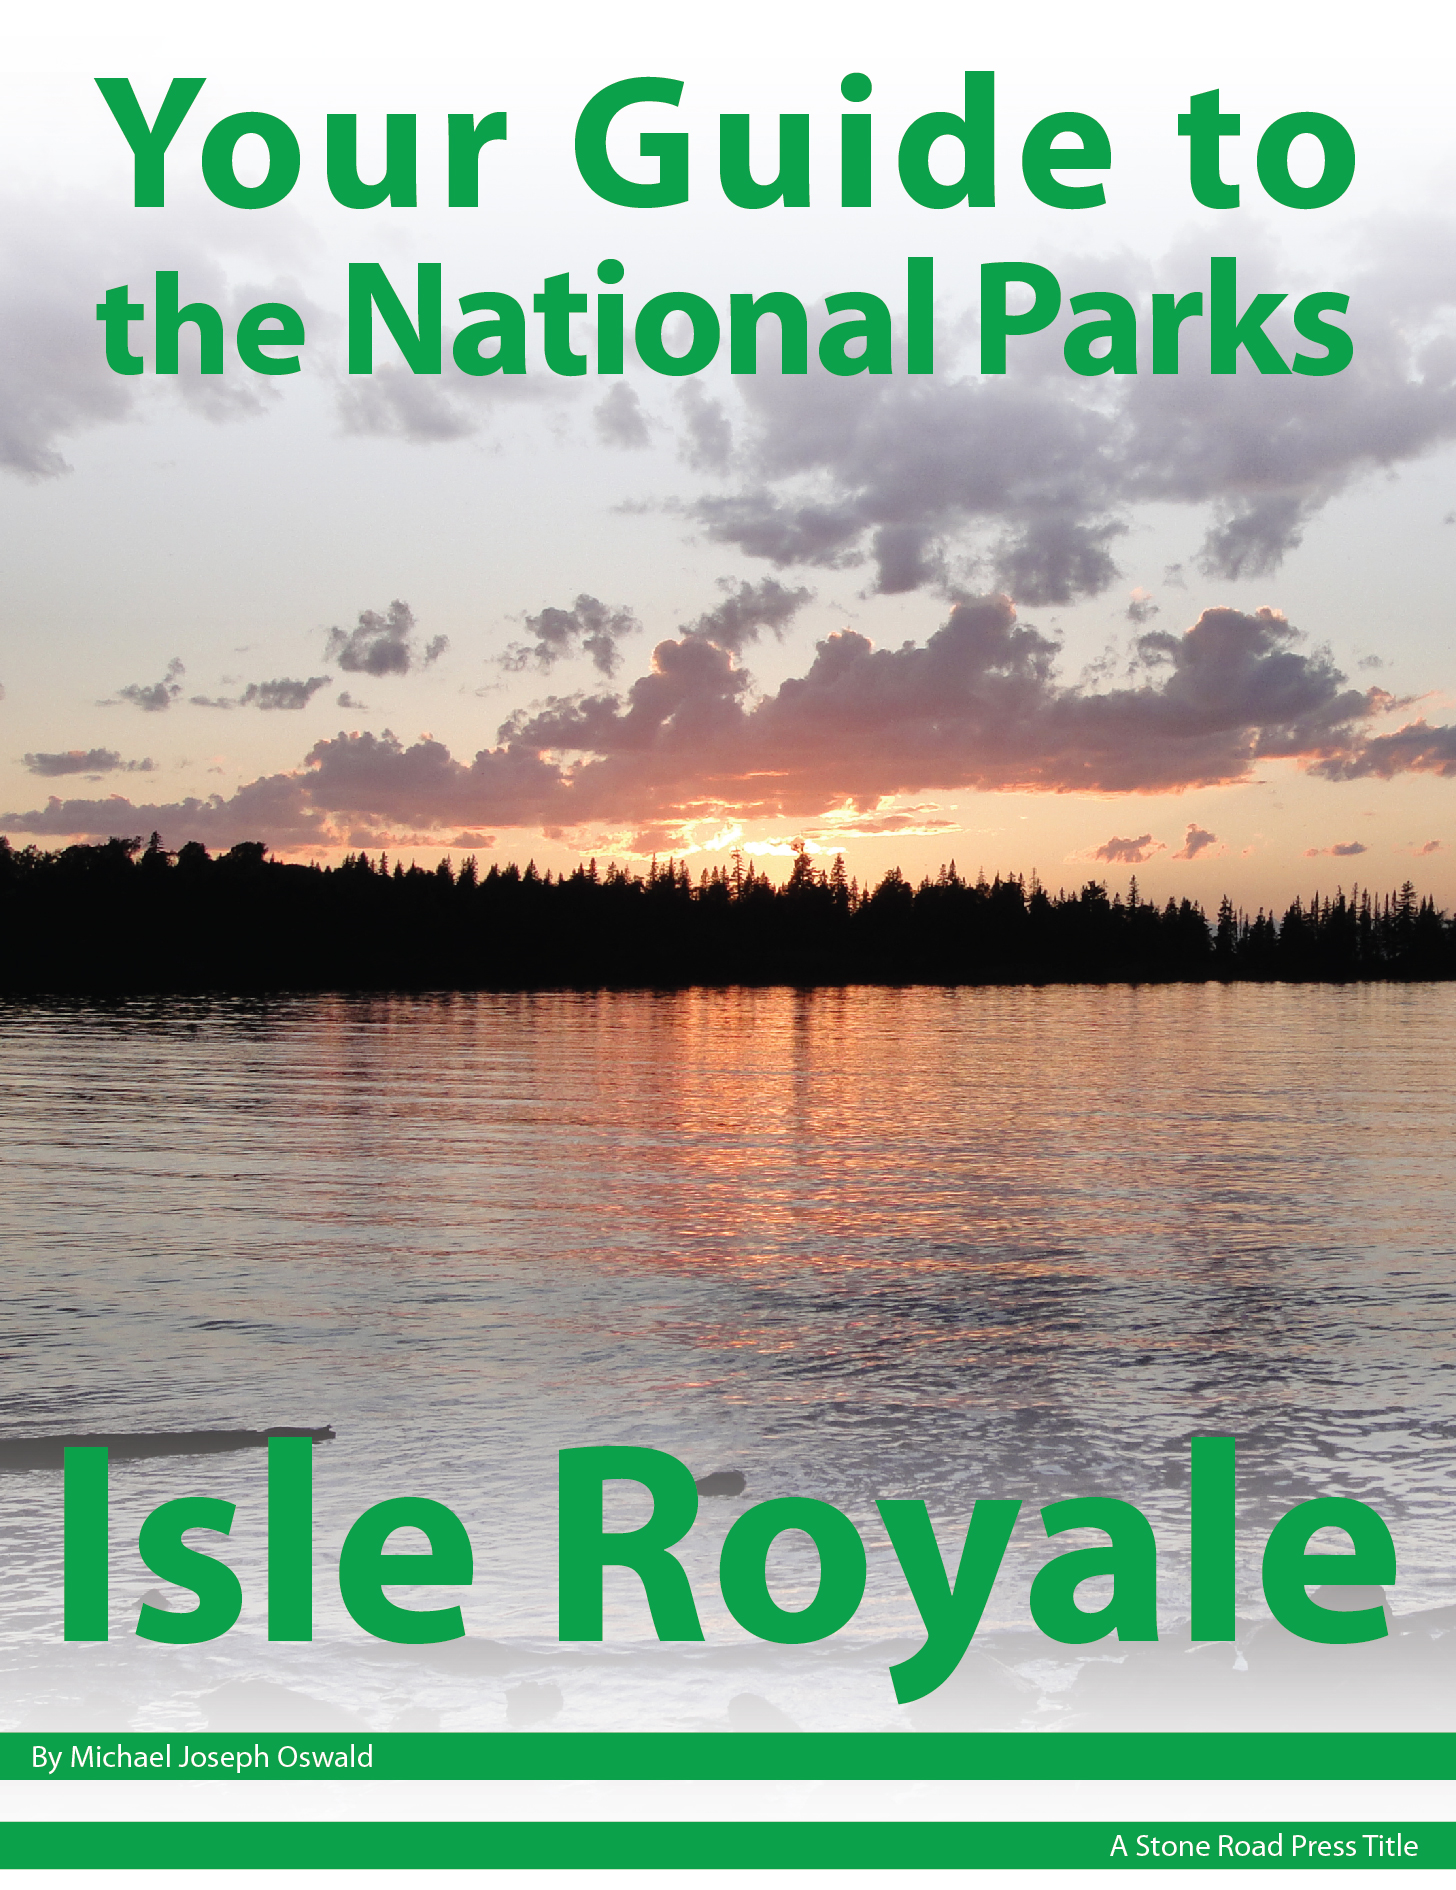 Your Guide to Isle Royale National Park